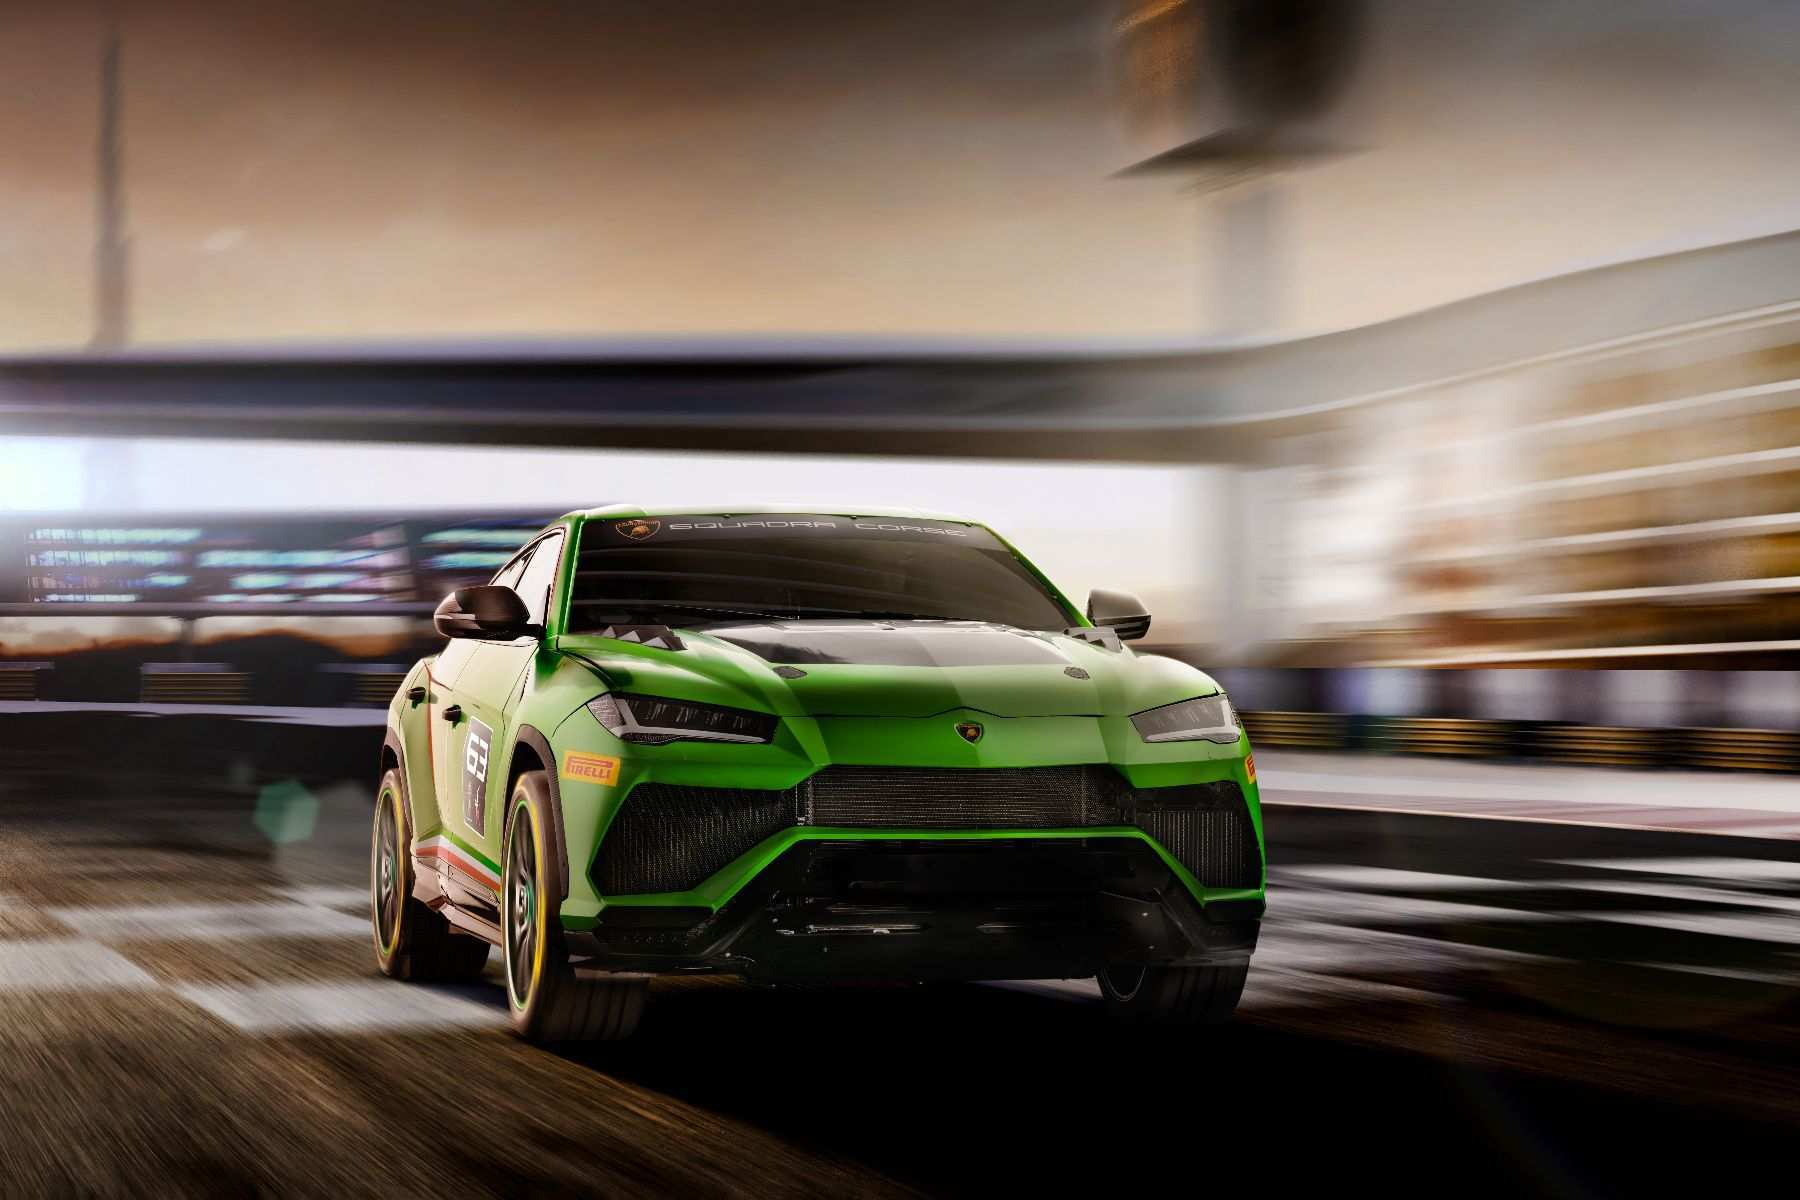 62 All New 2020 Lamborghini Suv Configurations for 2020 Lamborghini Suv